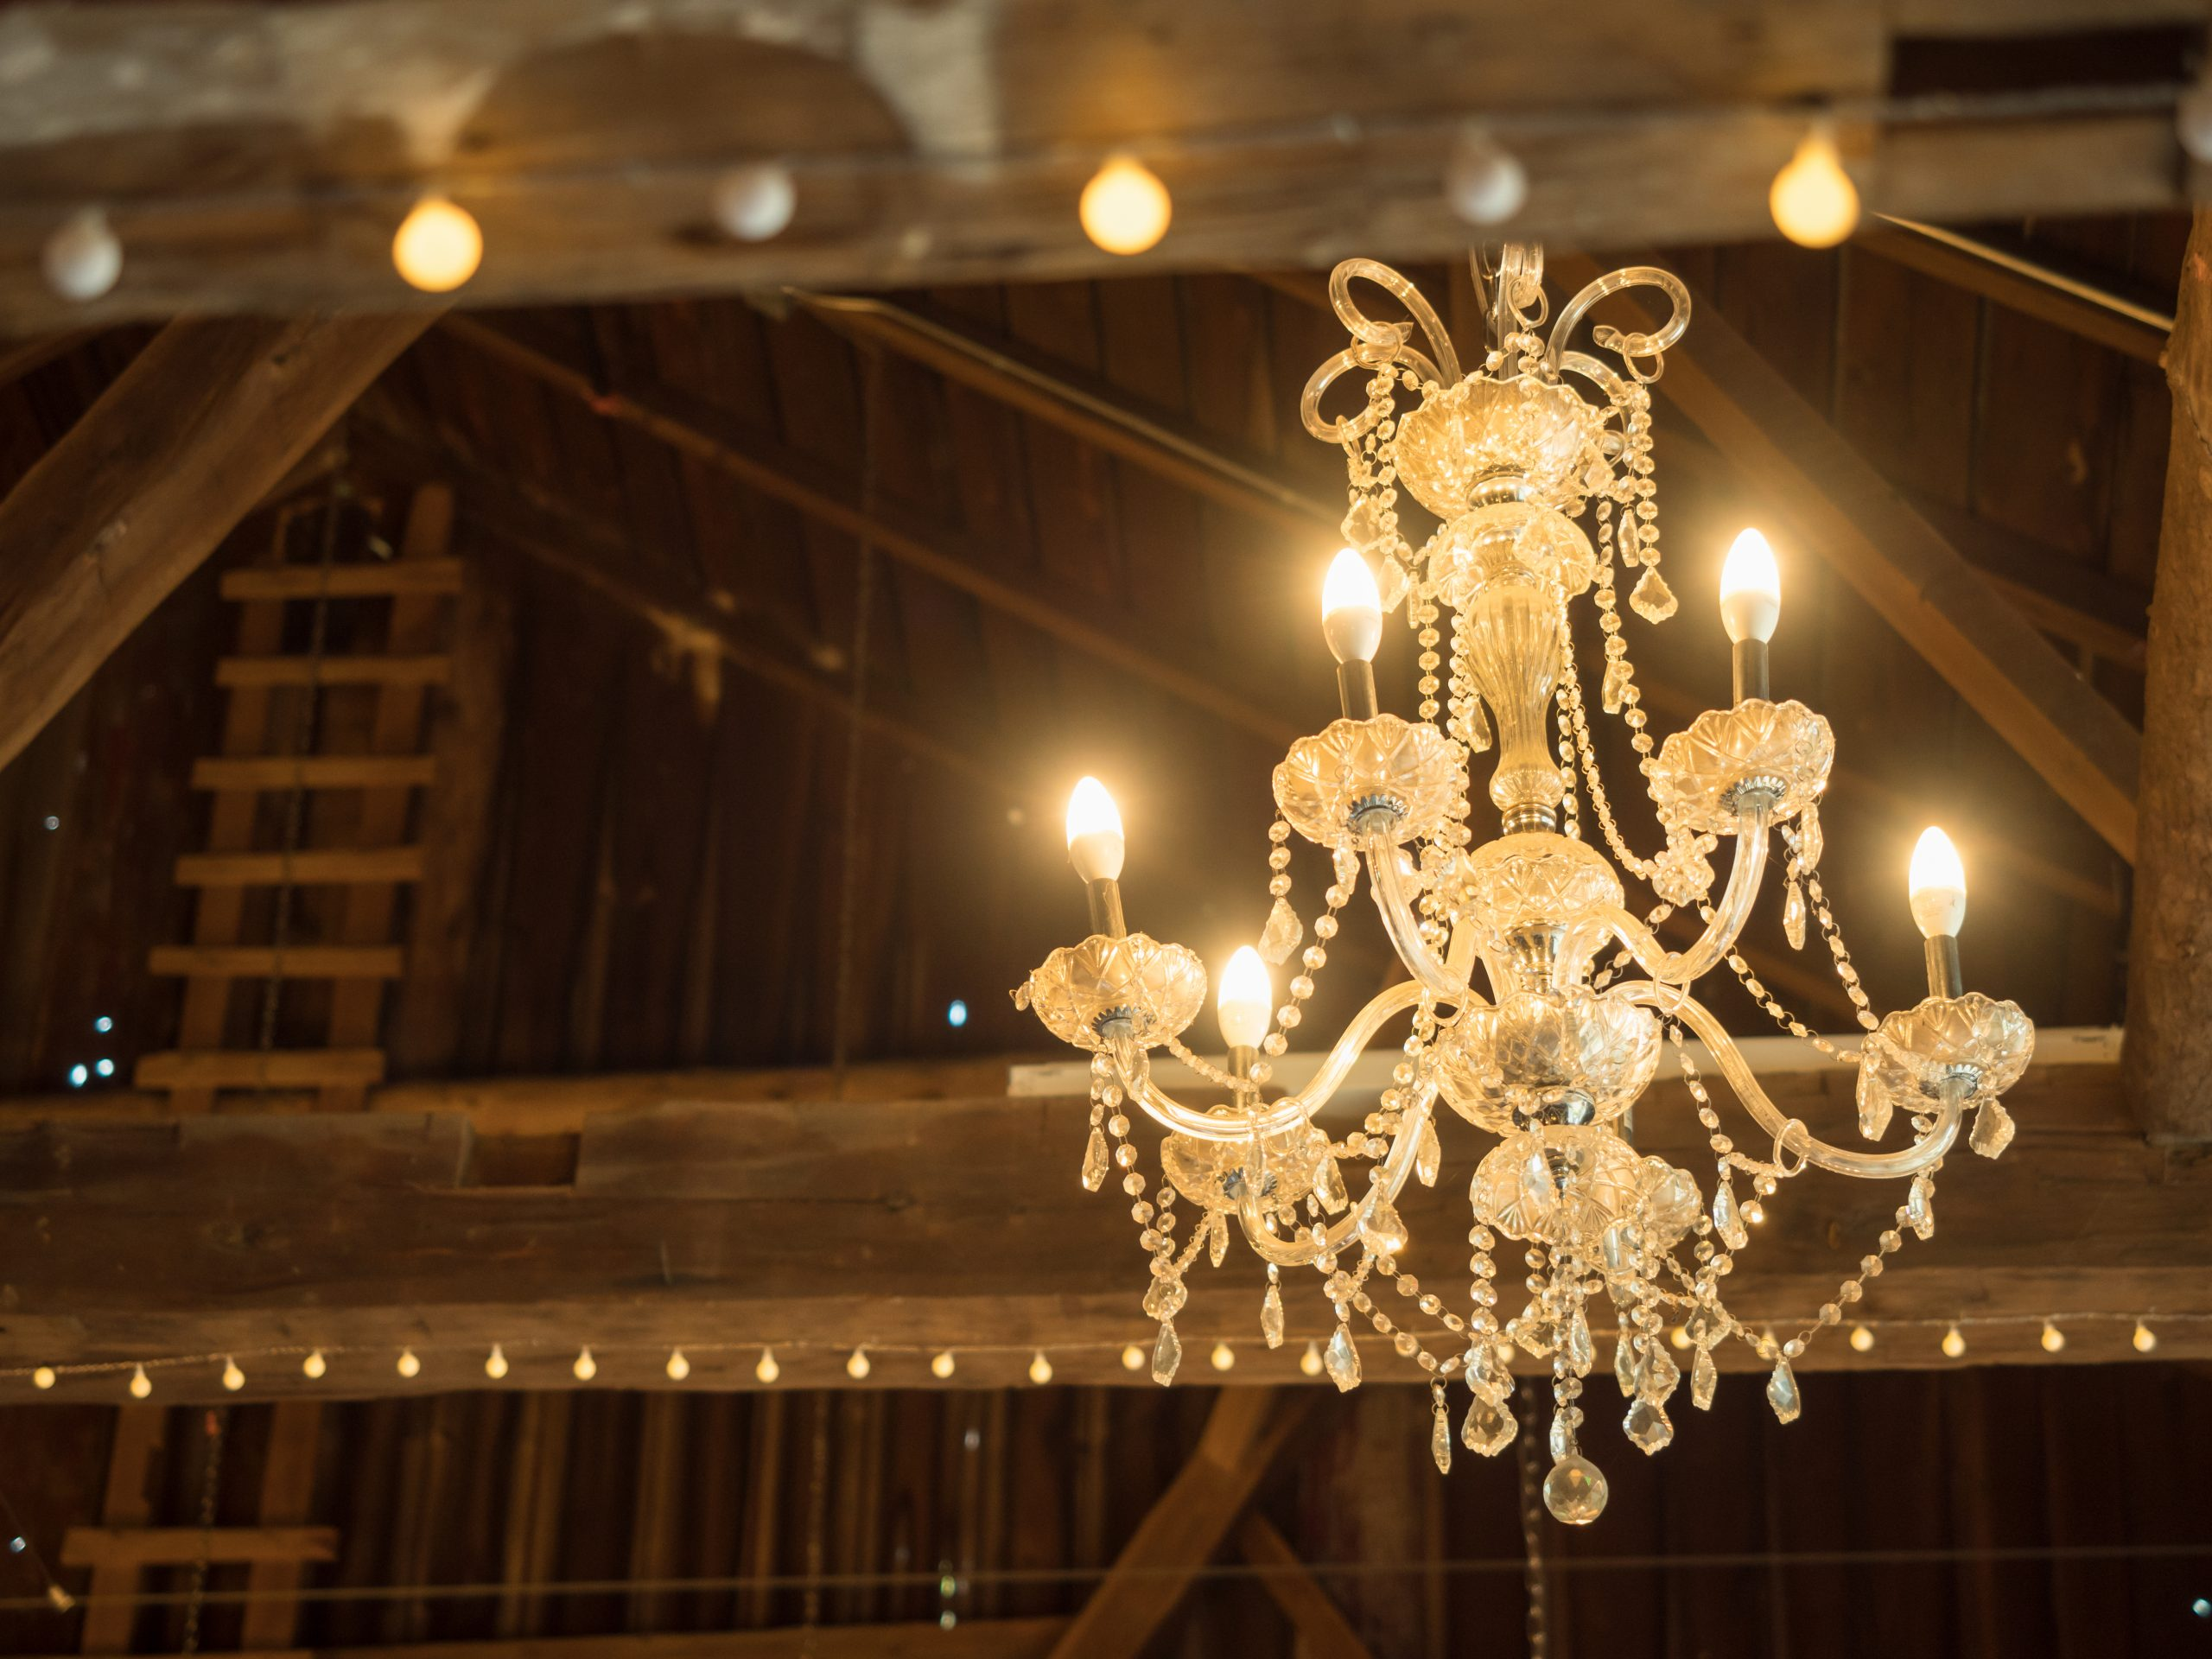 Chandelier in middle of Juliet Rome Lifestyle